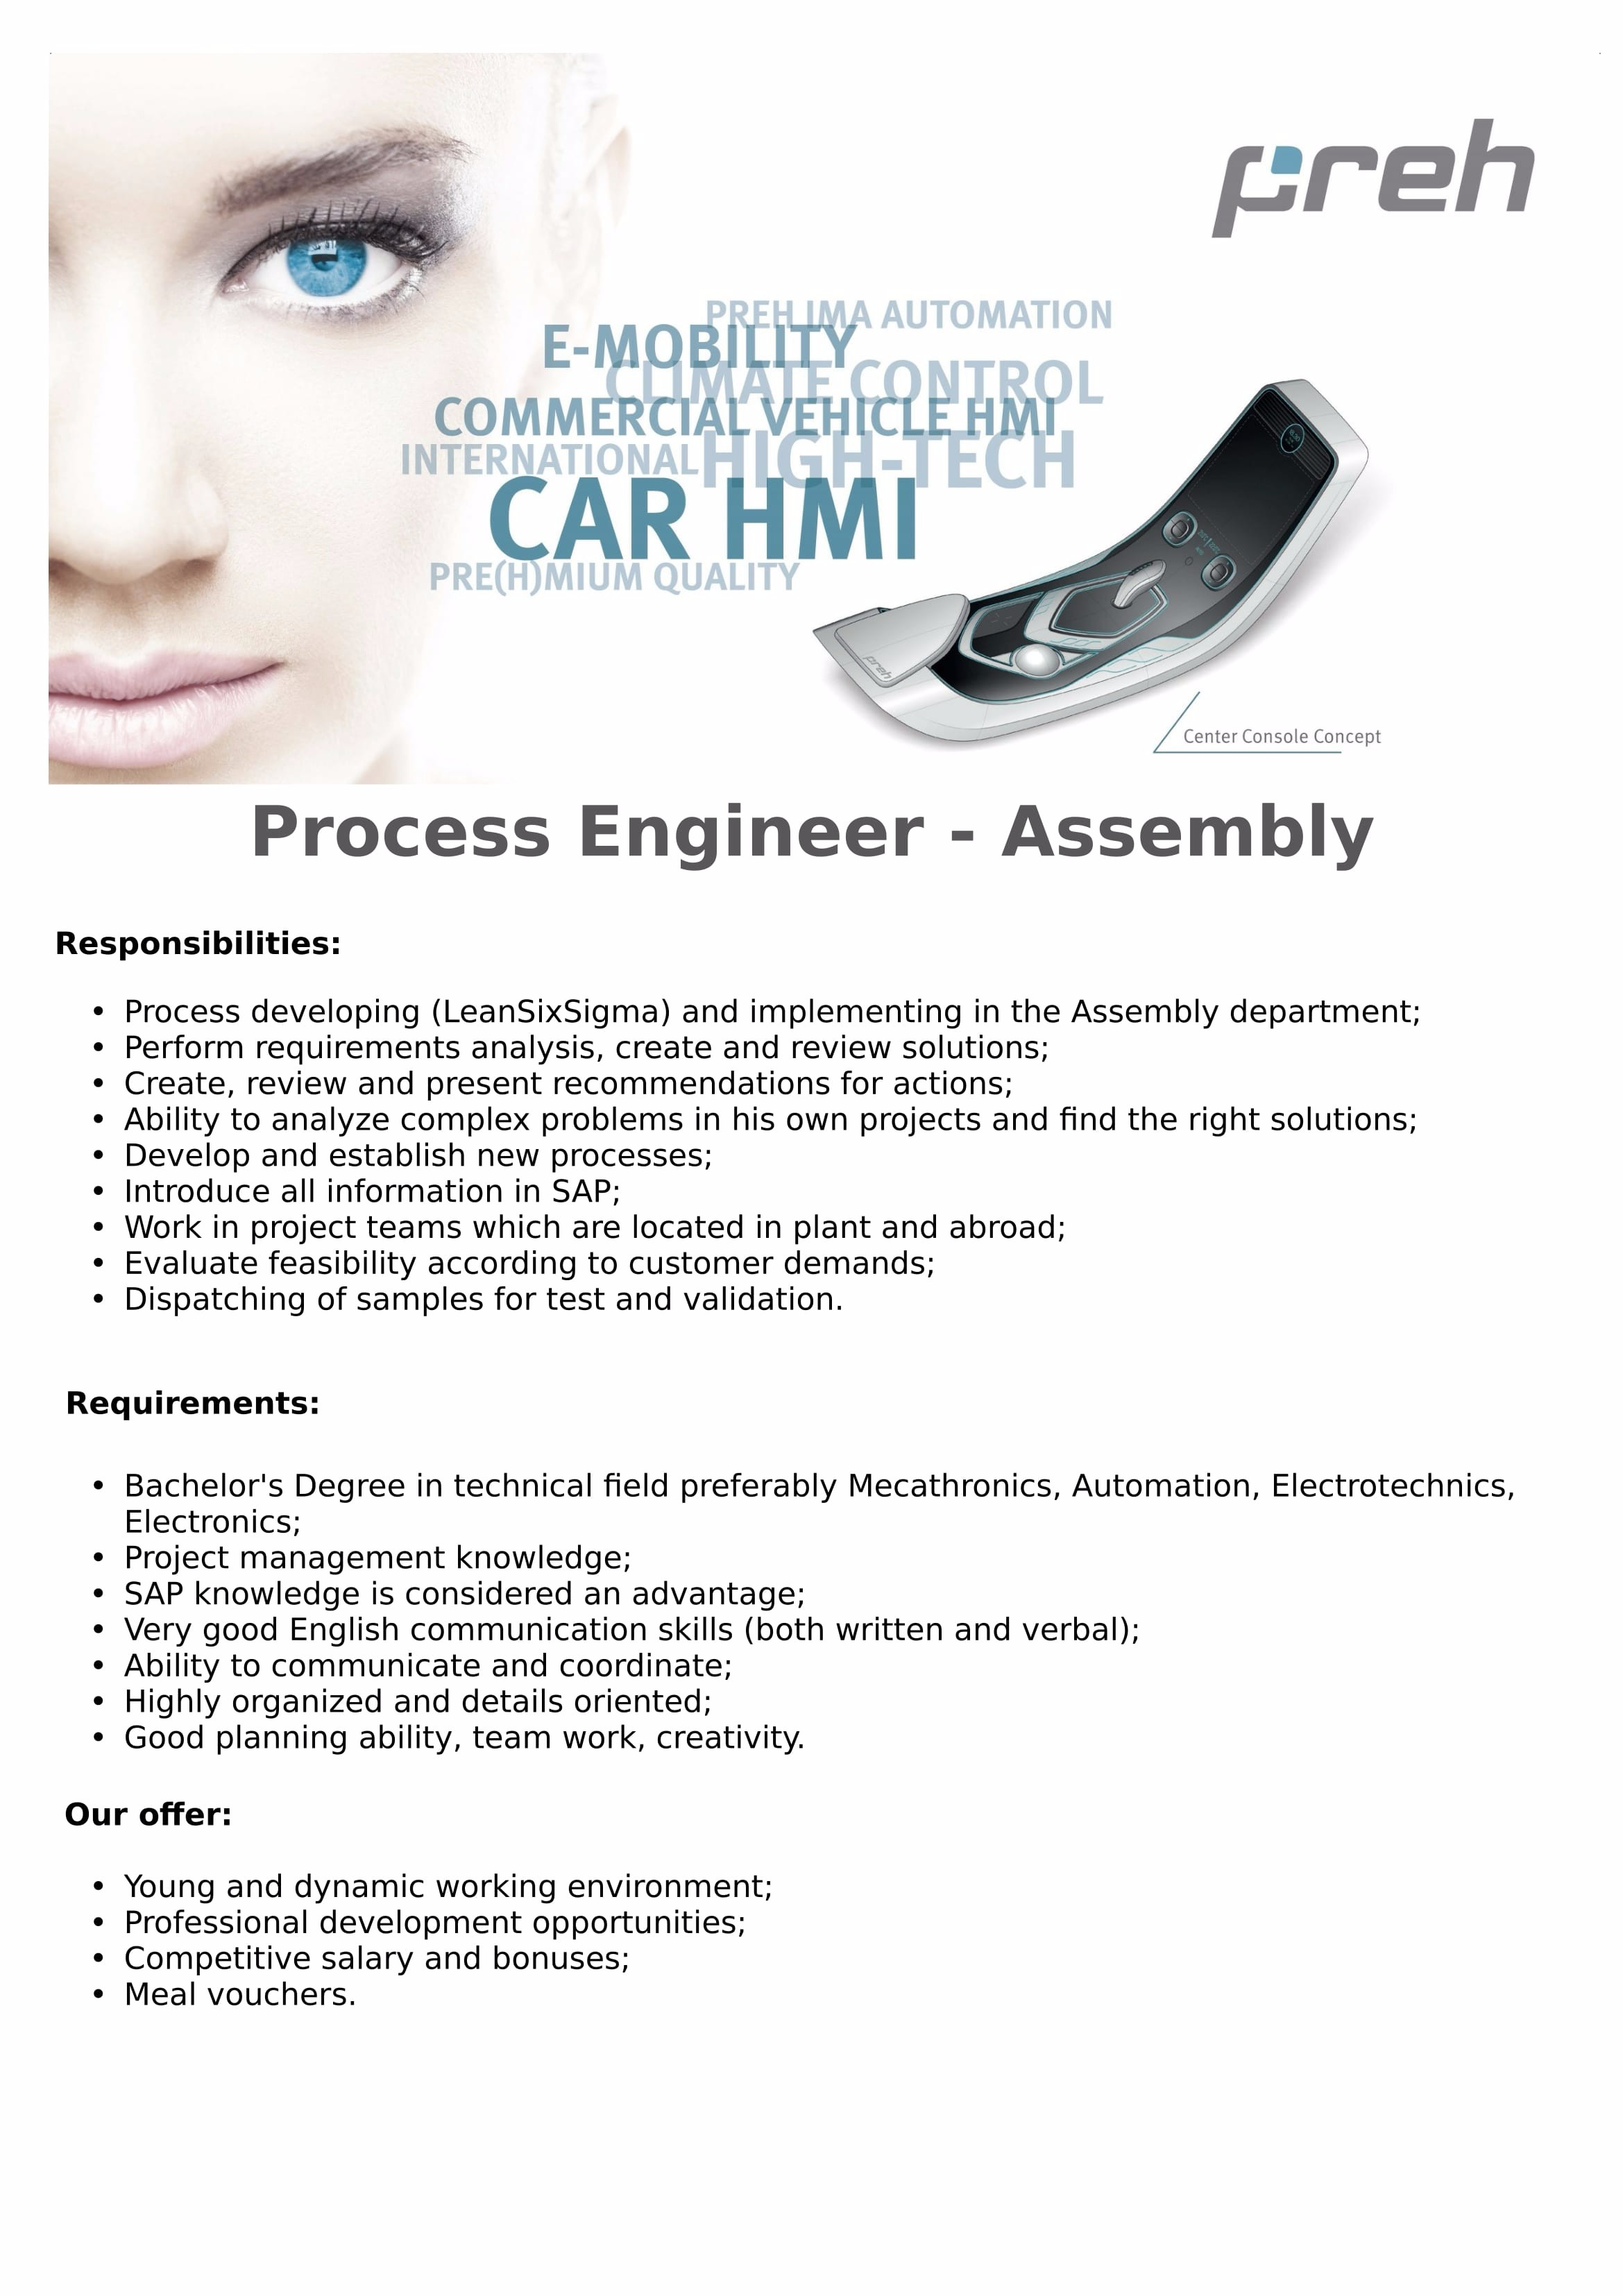 Process Engineer Assembly-1